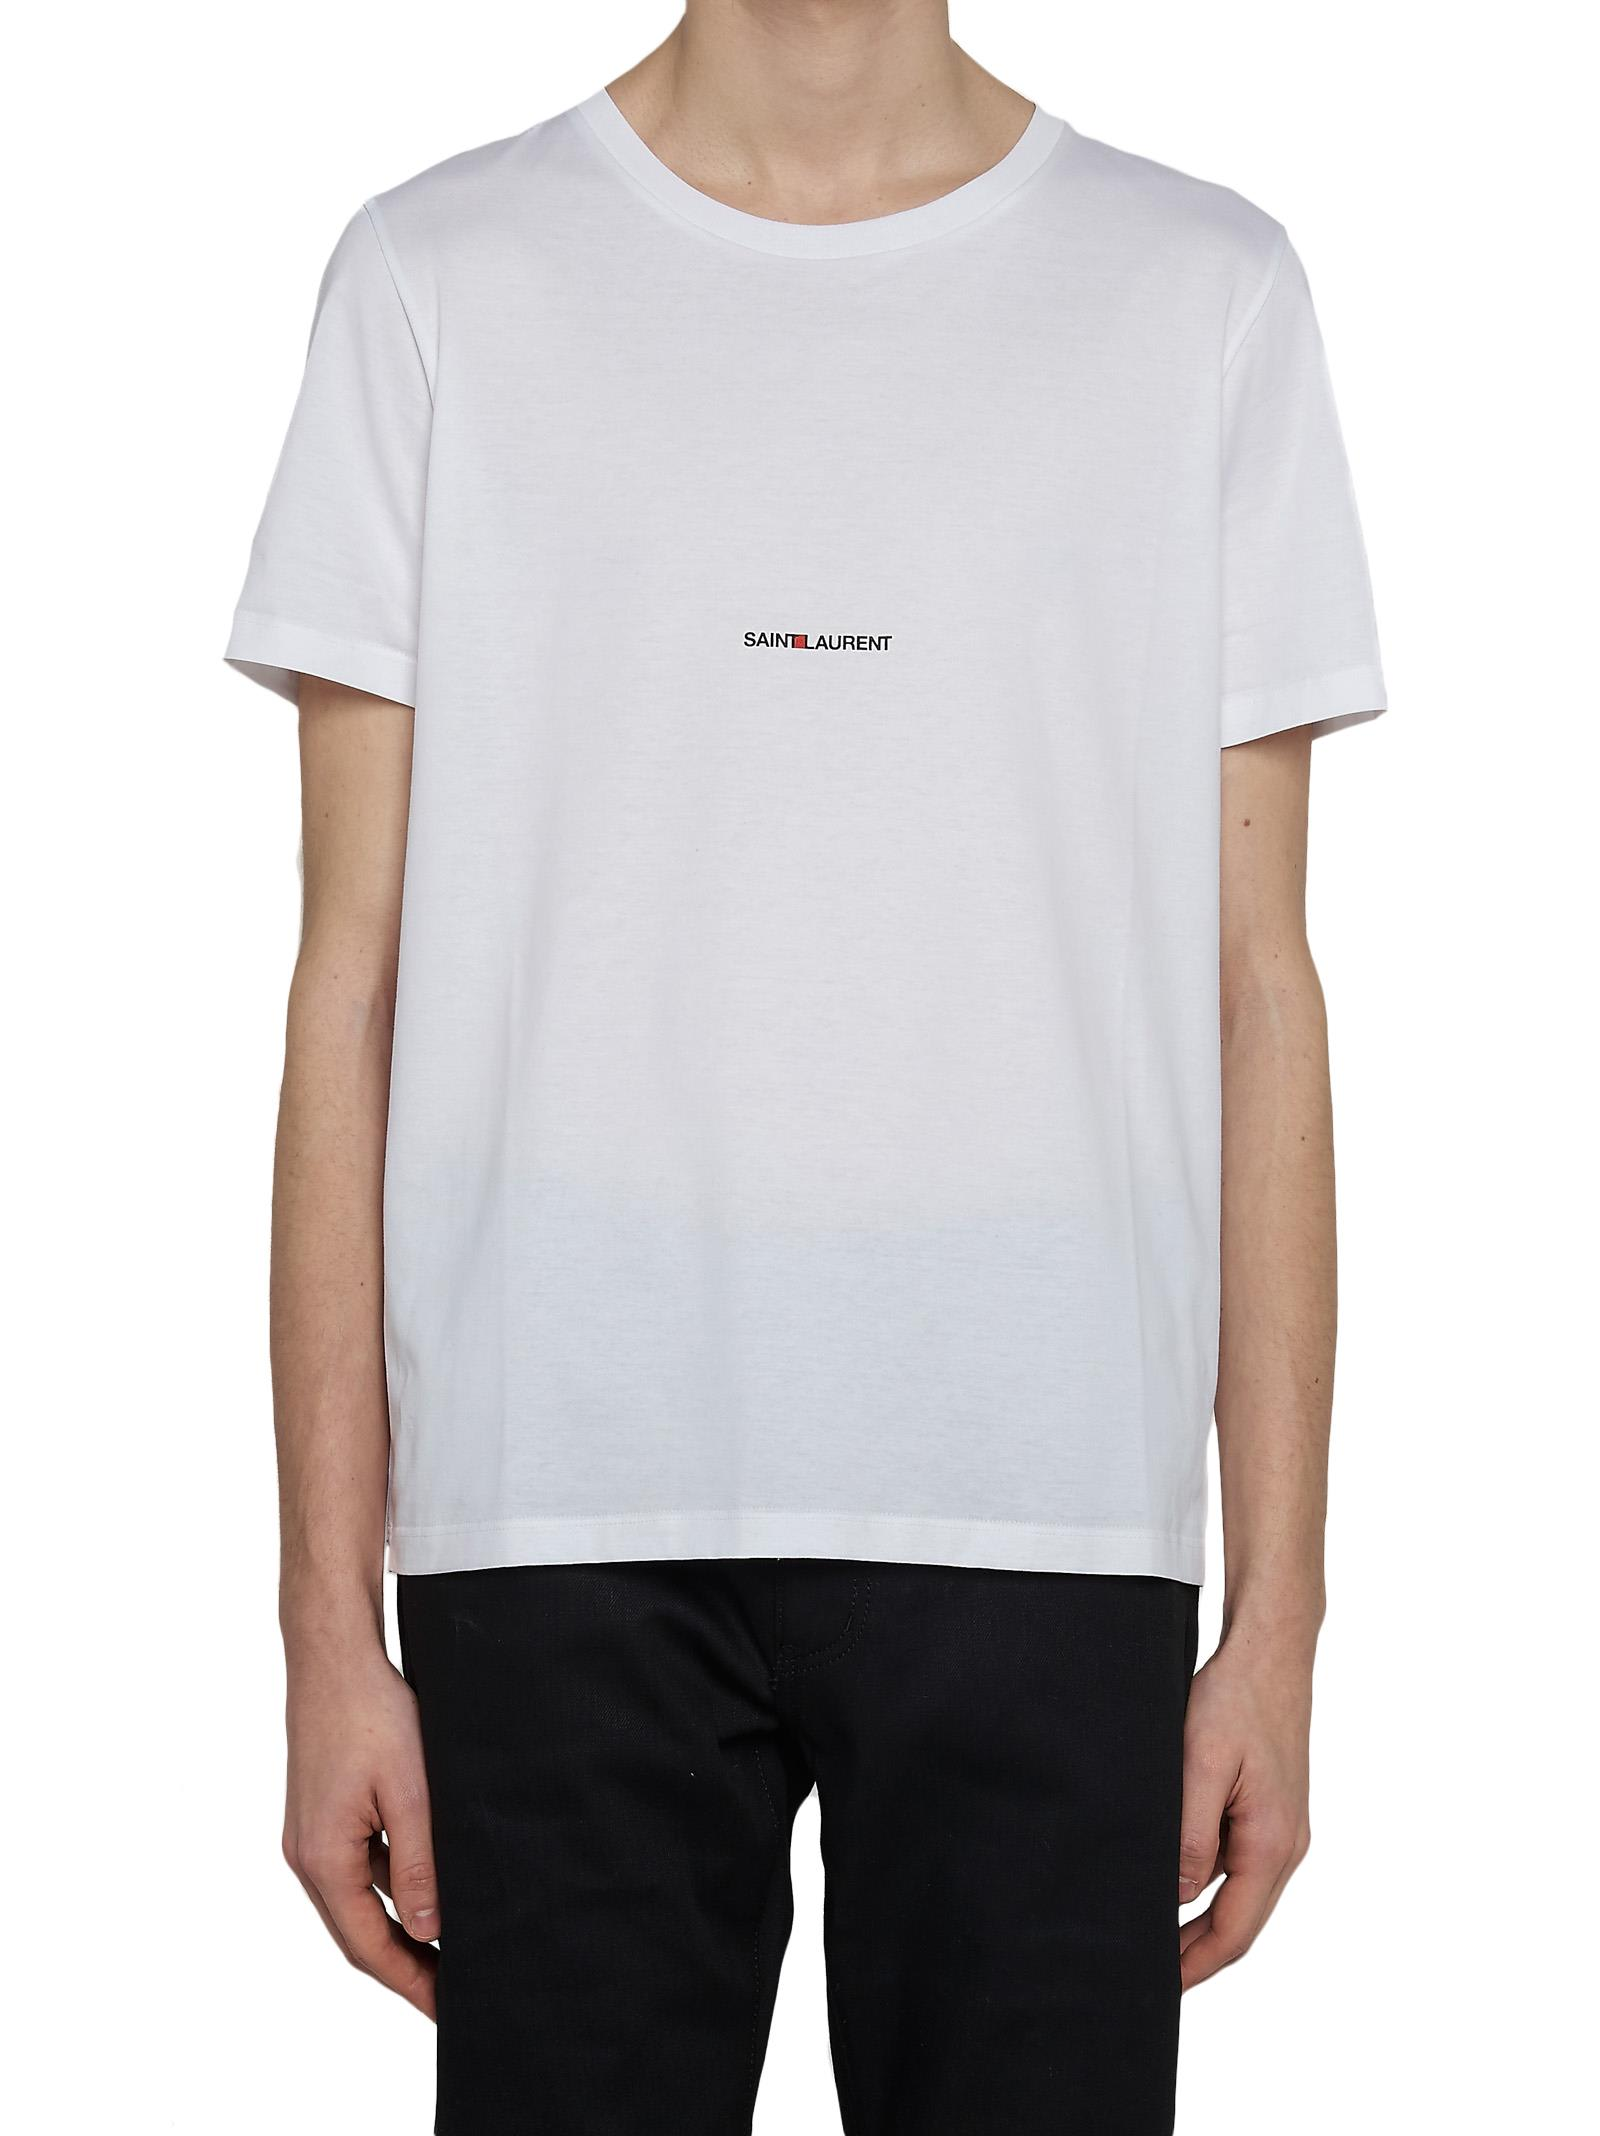 Saint Laurent saint Laurent Rive Gauche T-shirt